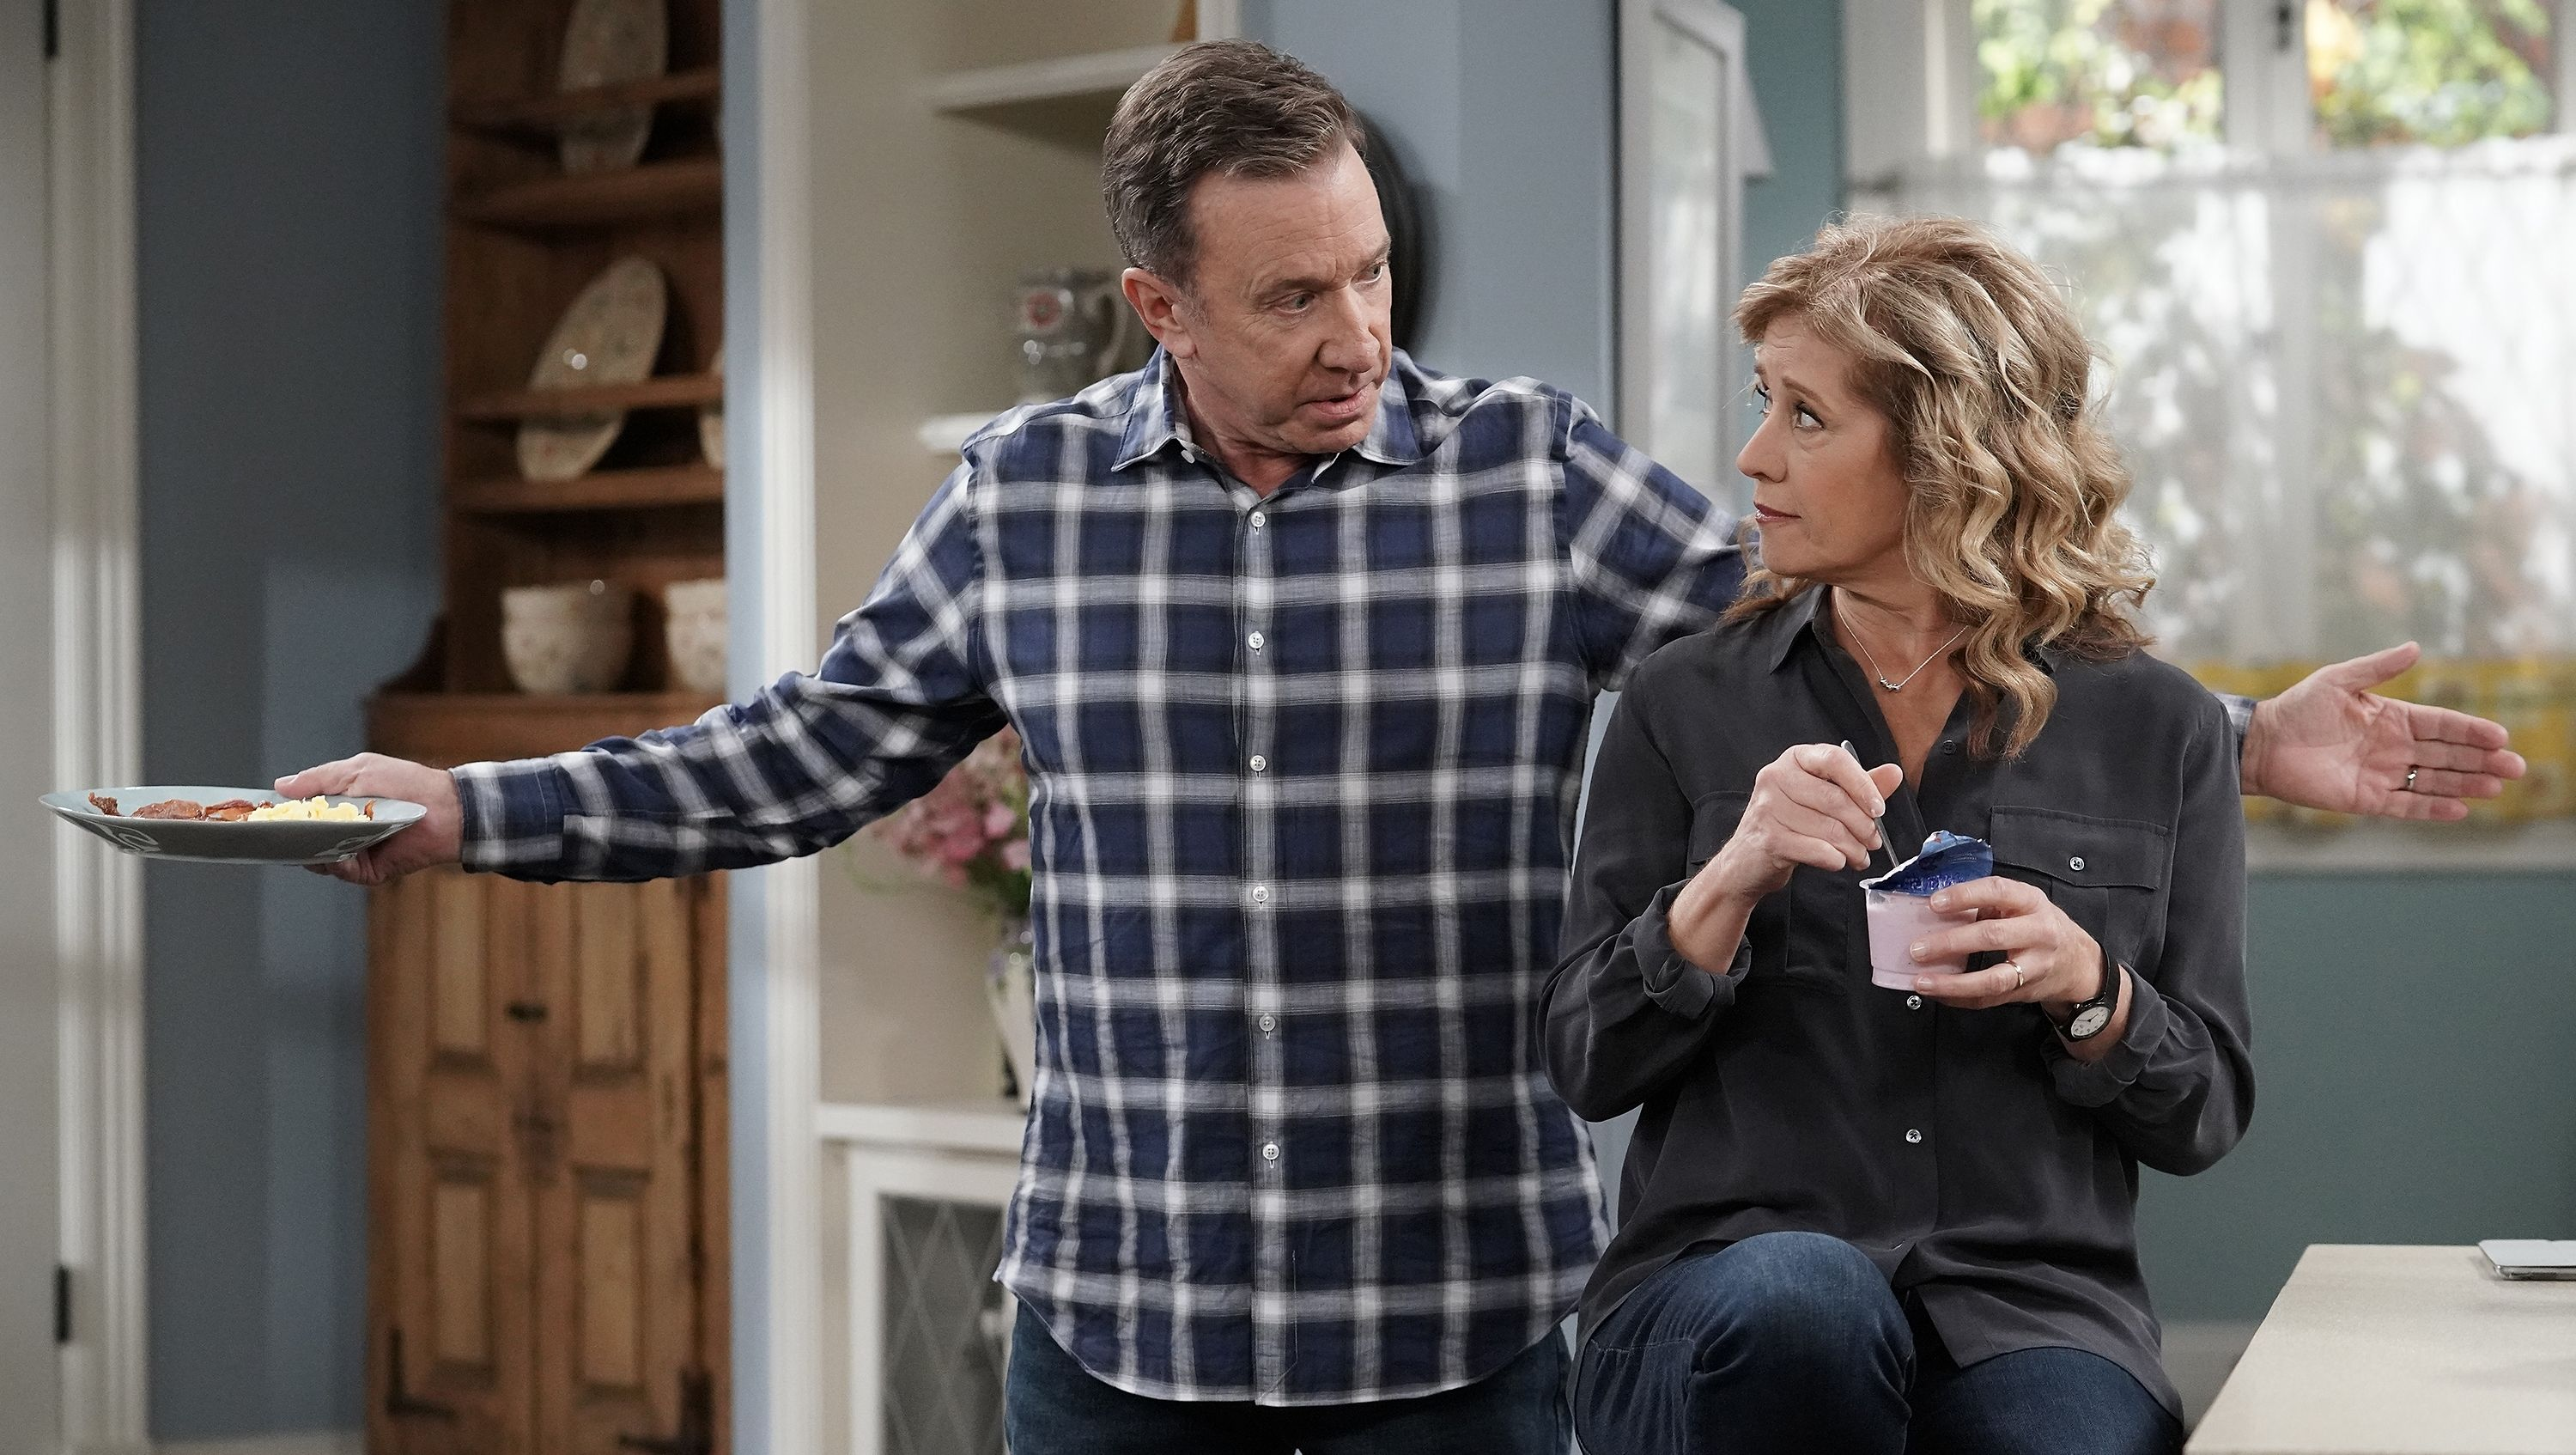 'Last Man Standing' Star Tim Allen Admits He Likes to 'Poke Fun at Very Brittle Liberals'